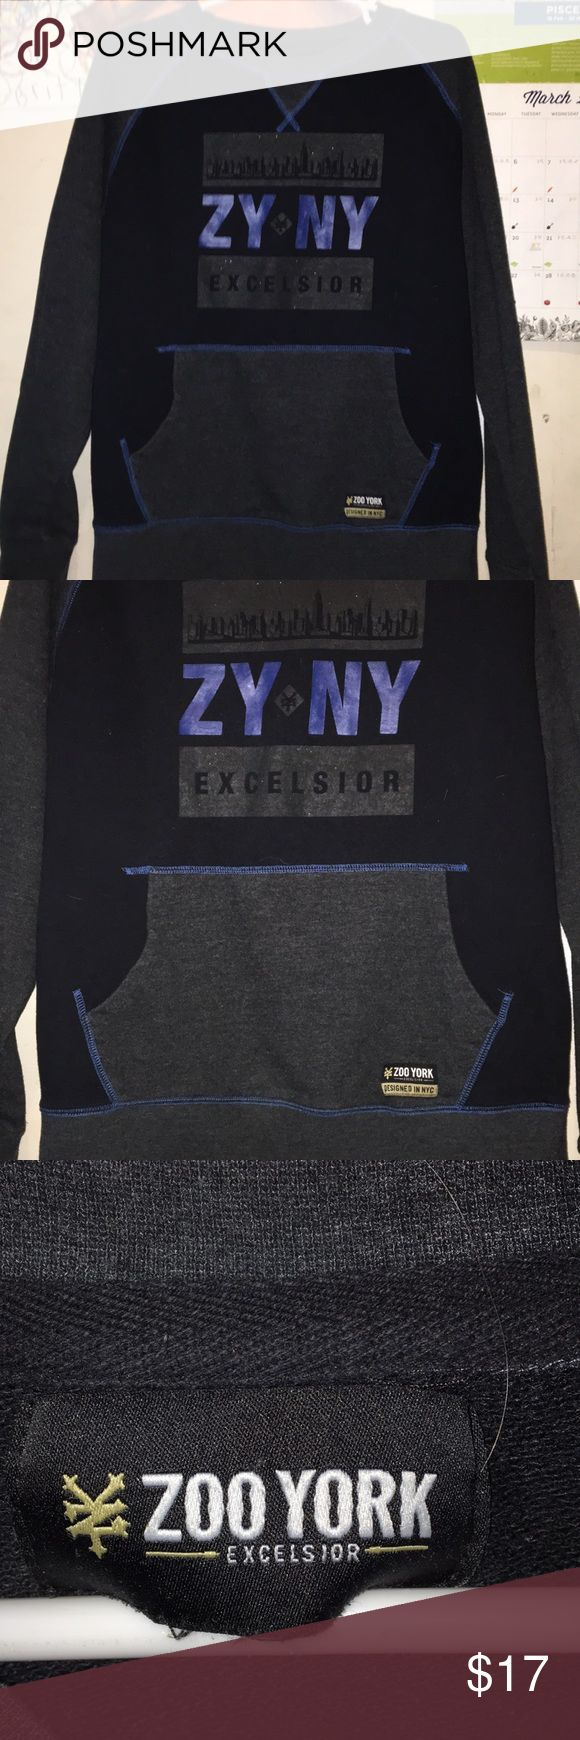 Zoo York Excelsior Designed in NYC sweatshirt Zoo York sweatshirt. Black and gray with blue lettering and stitching. Has a front pocket like a hoodie but it's only a sweatshirt.Excelsior edition. Not sure what size but I'd say it's a medium-large. A little broken in but all the better. Not faded or torn. Still a great shirt!! Zoo York Shirts Sweatshirts & Hoodies